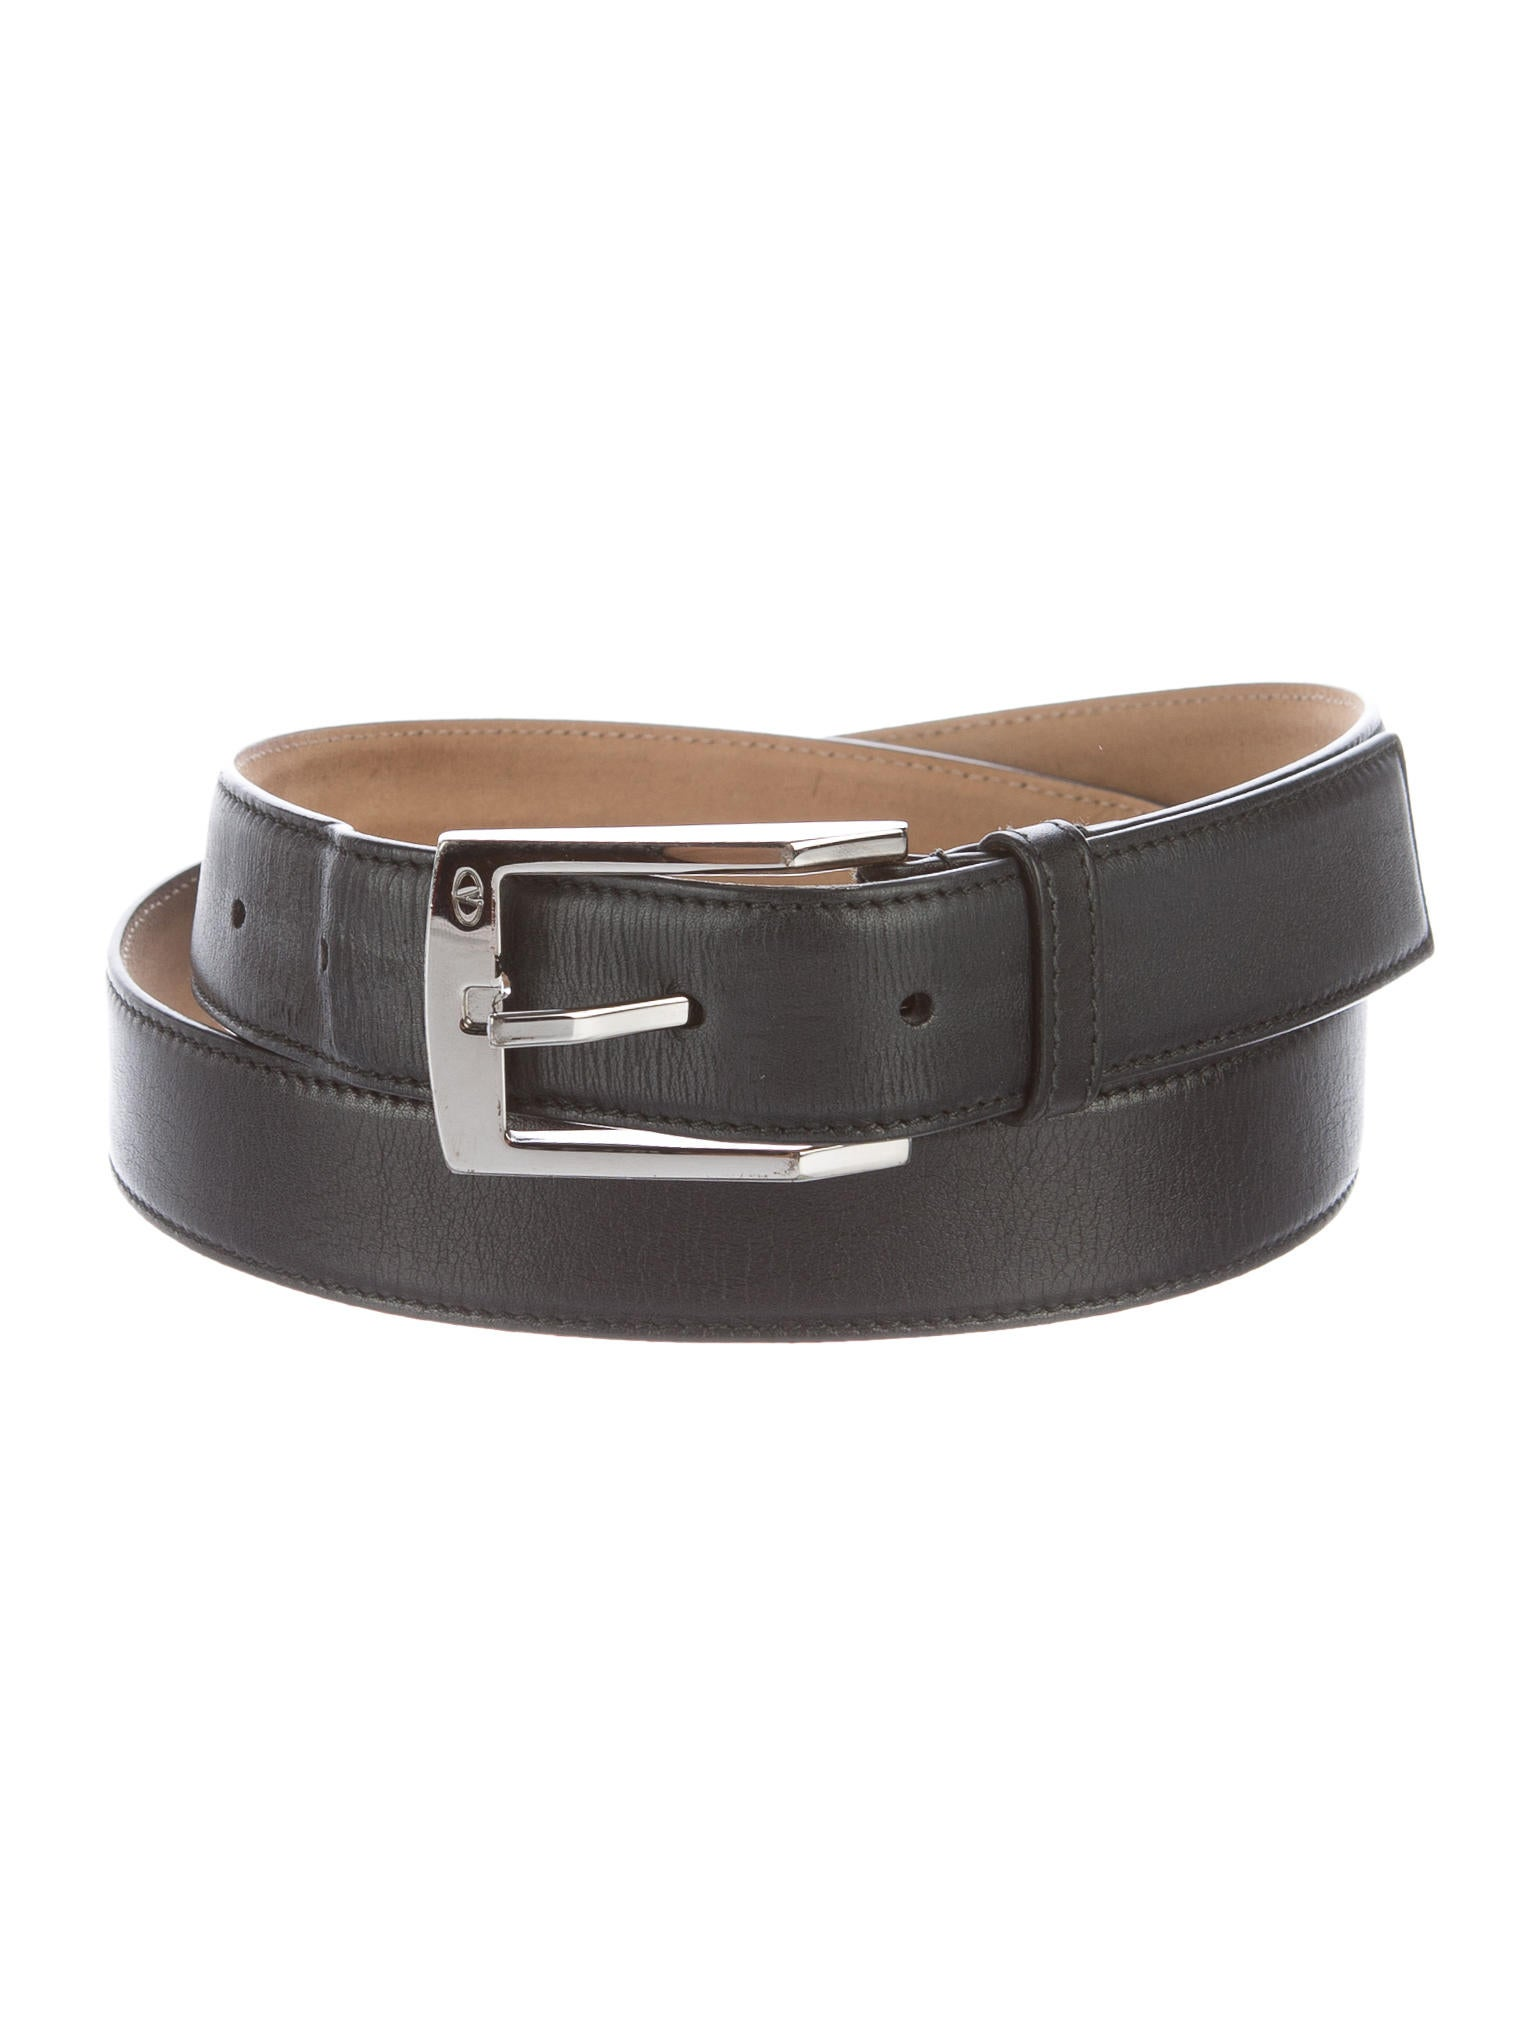 entefile.gq Specialize in Men's & Women's Leather belts, casual belts, western belts, dress belts, jean belt, golf belts, leather belt straps, white belts, braided Great Men's selection, Quality and Price. Our customers can now buy quality men's & women's genuine leather belts directly from us.